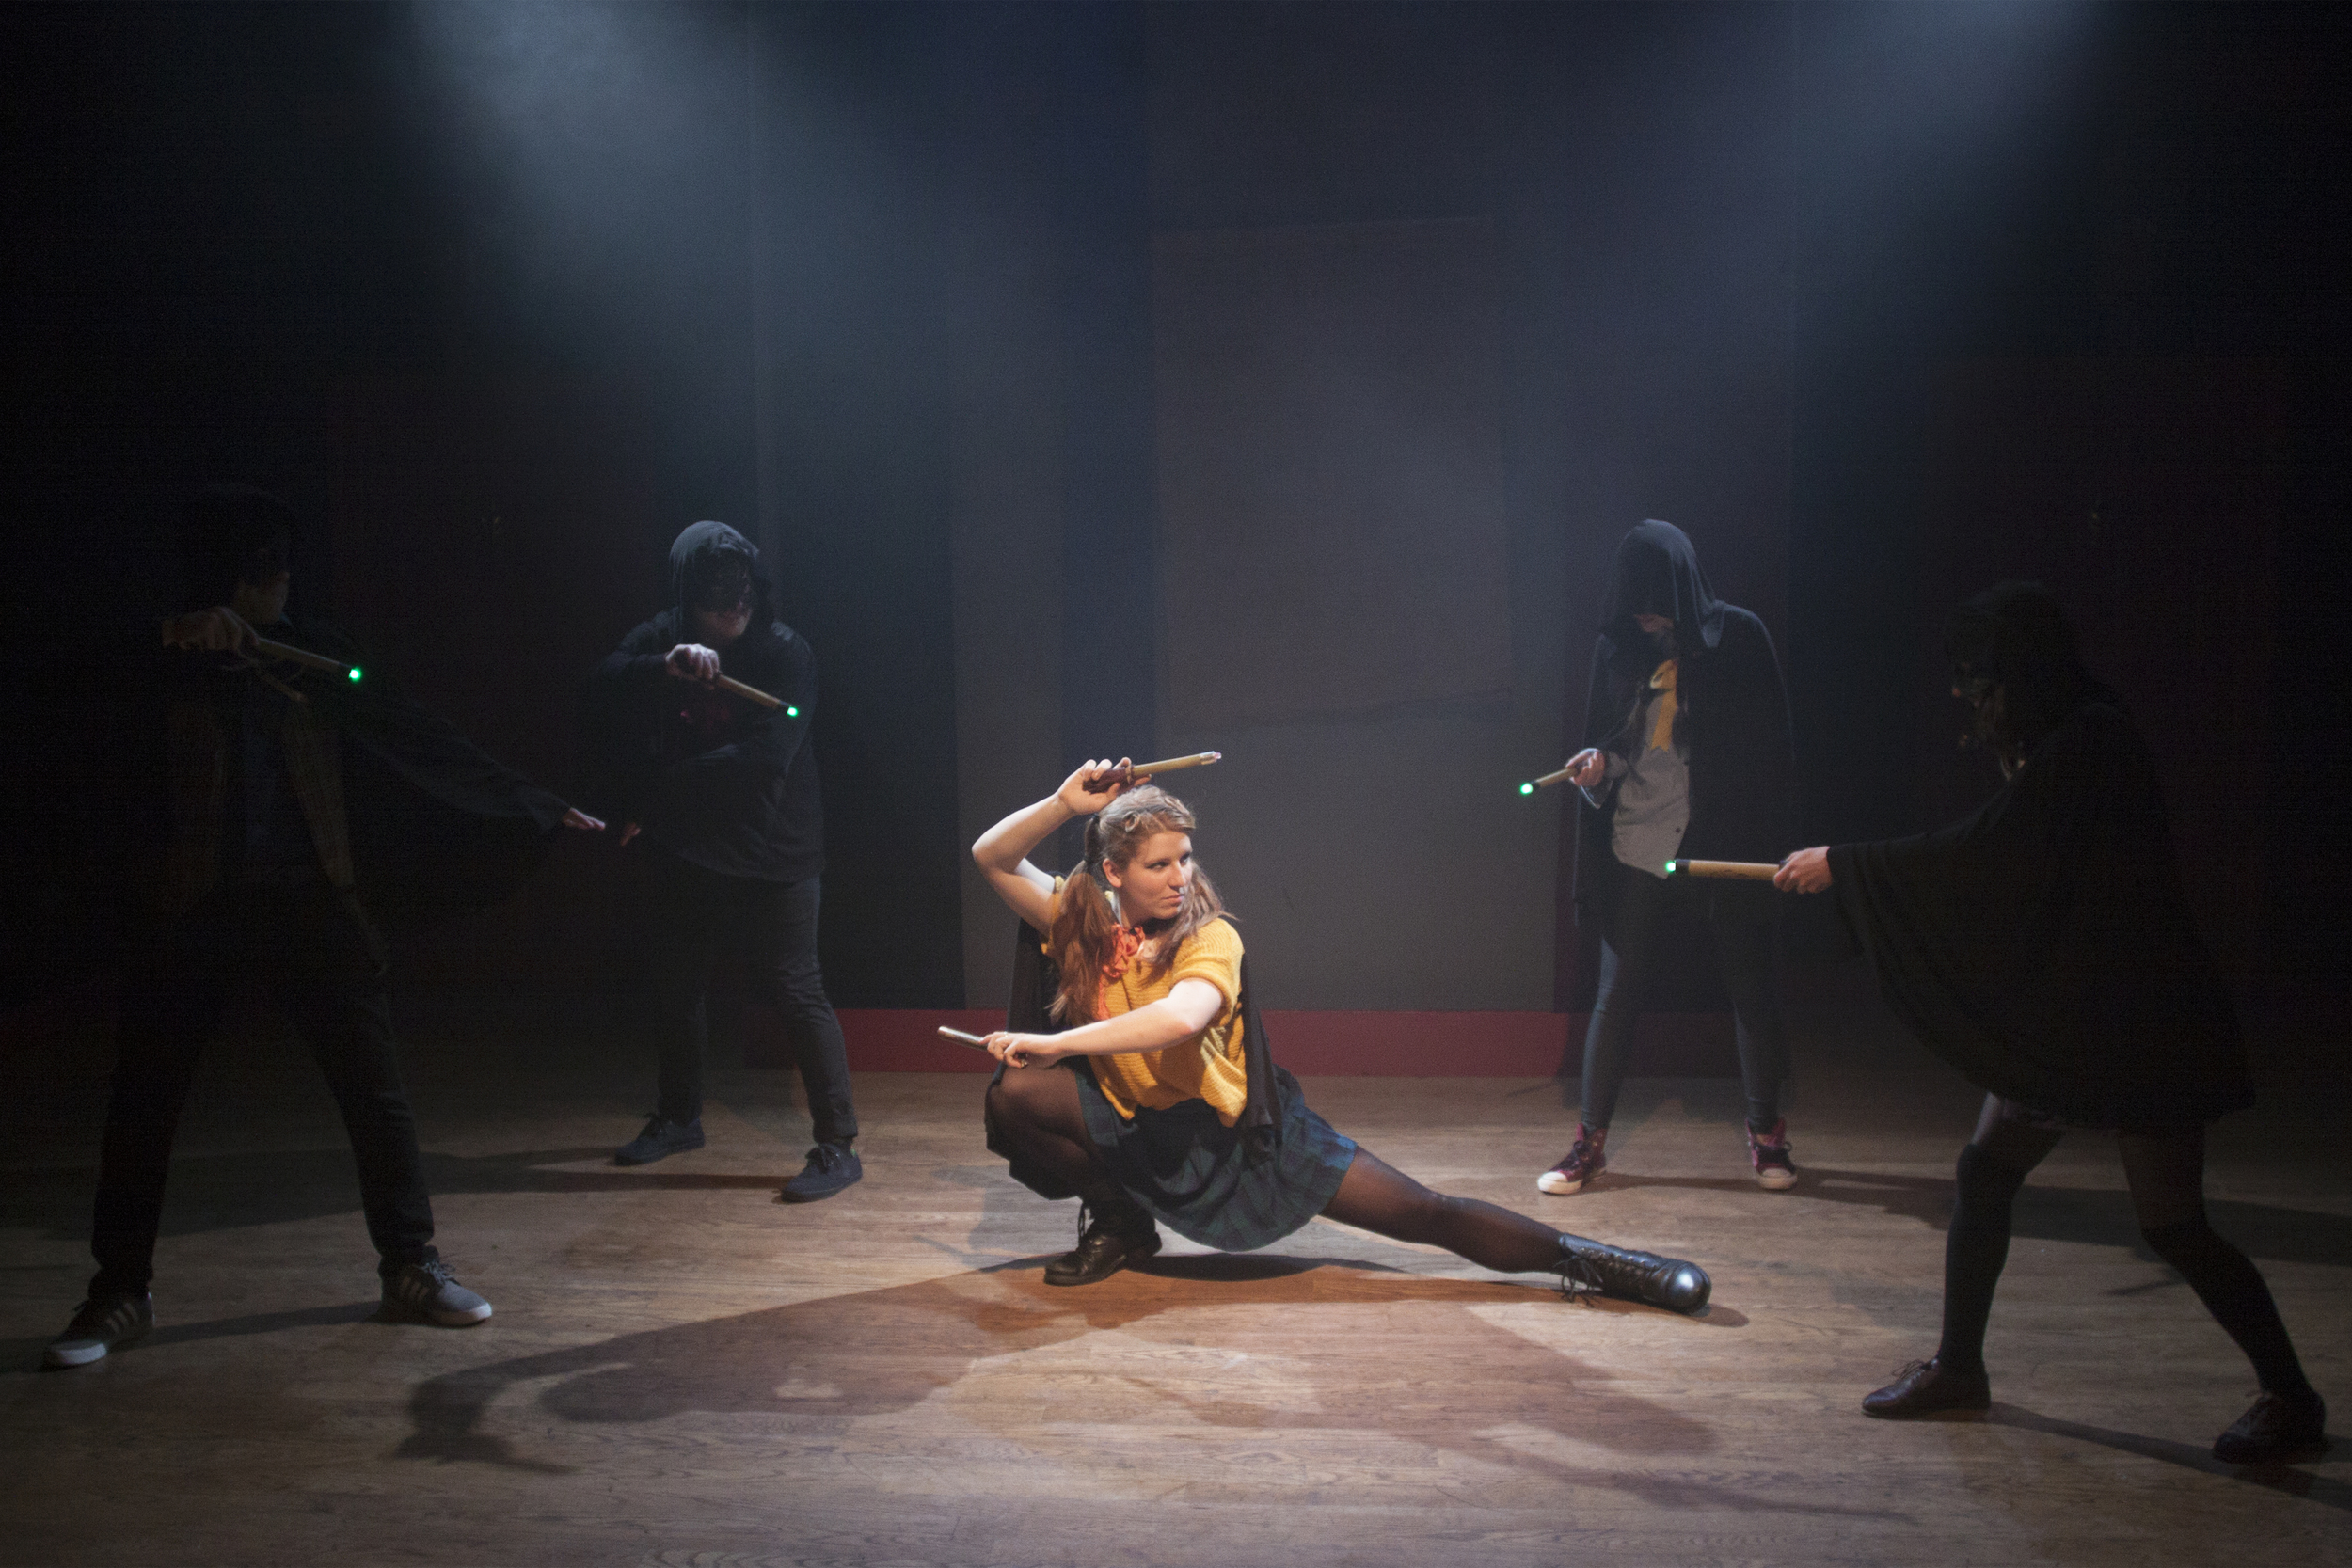 IMG_3470 - PUFFS - Leanne (Andy Miller) fights evil (The Company)-Photo by Lloyd Mulvey.jpg